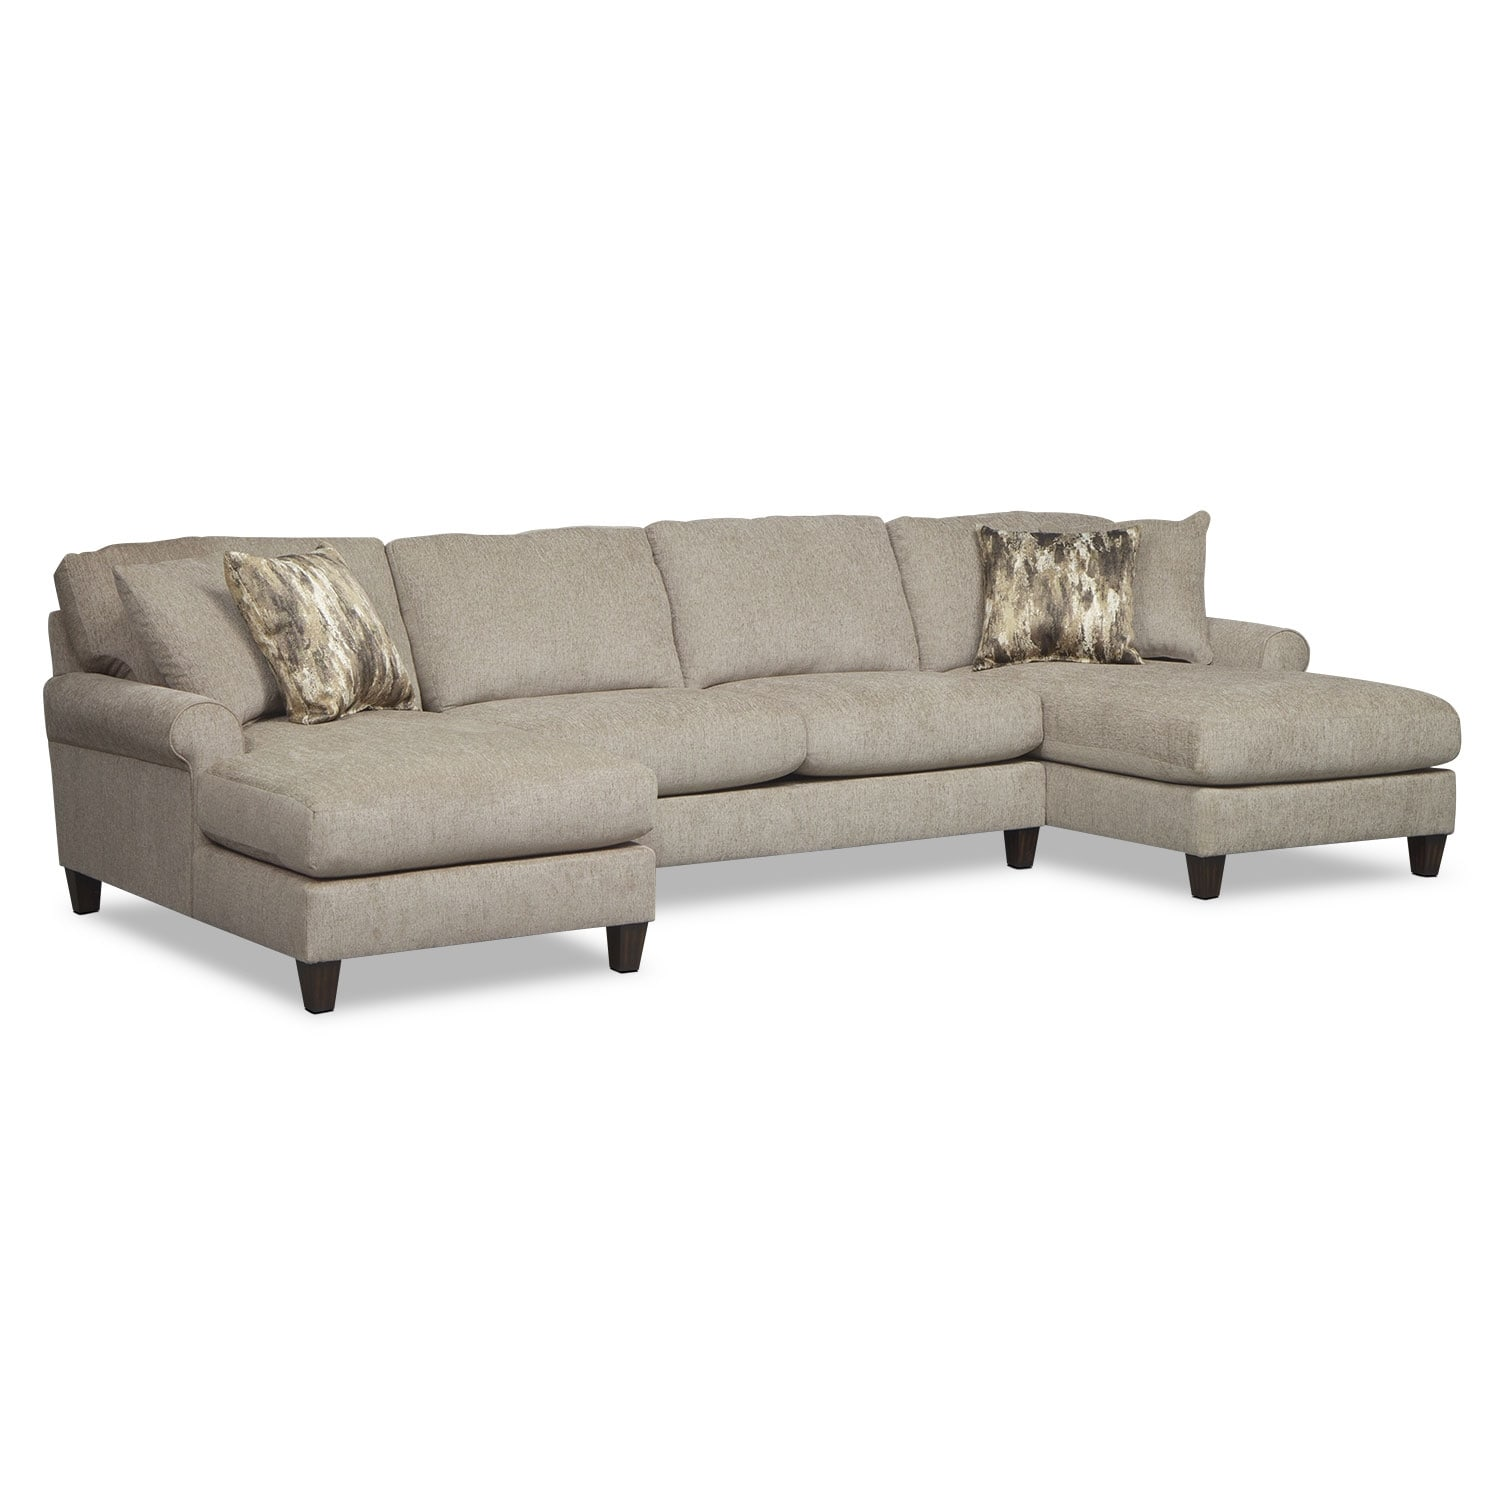 [Karma Mink 3 Pc. Sectional with 2 Chaises]